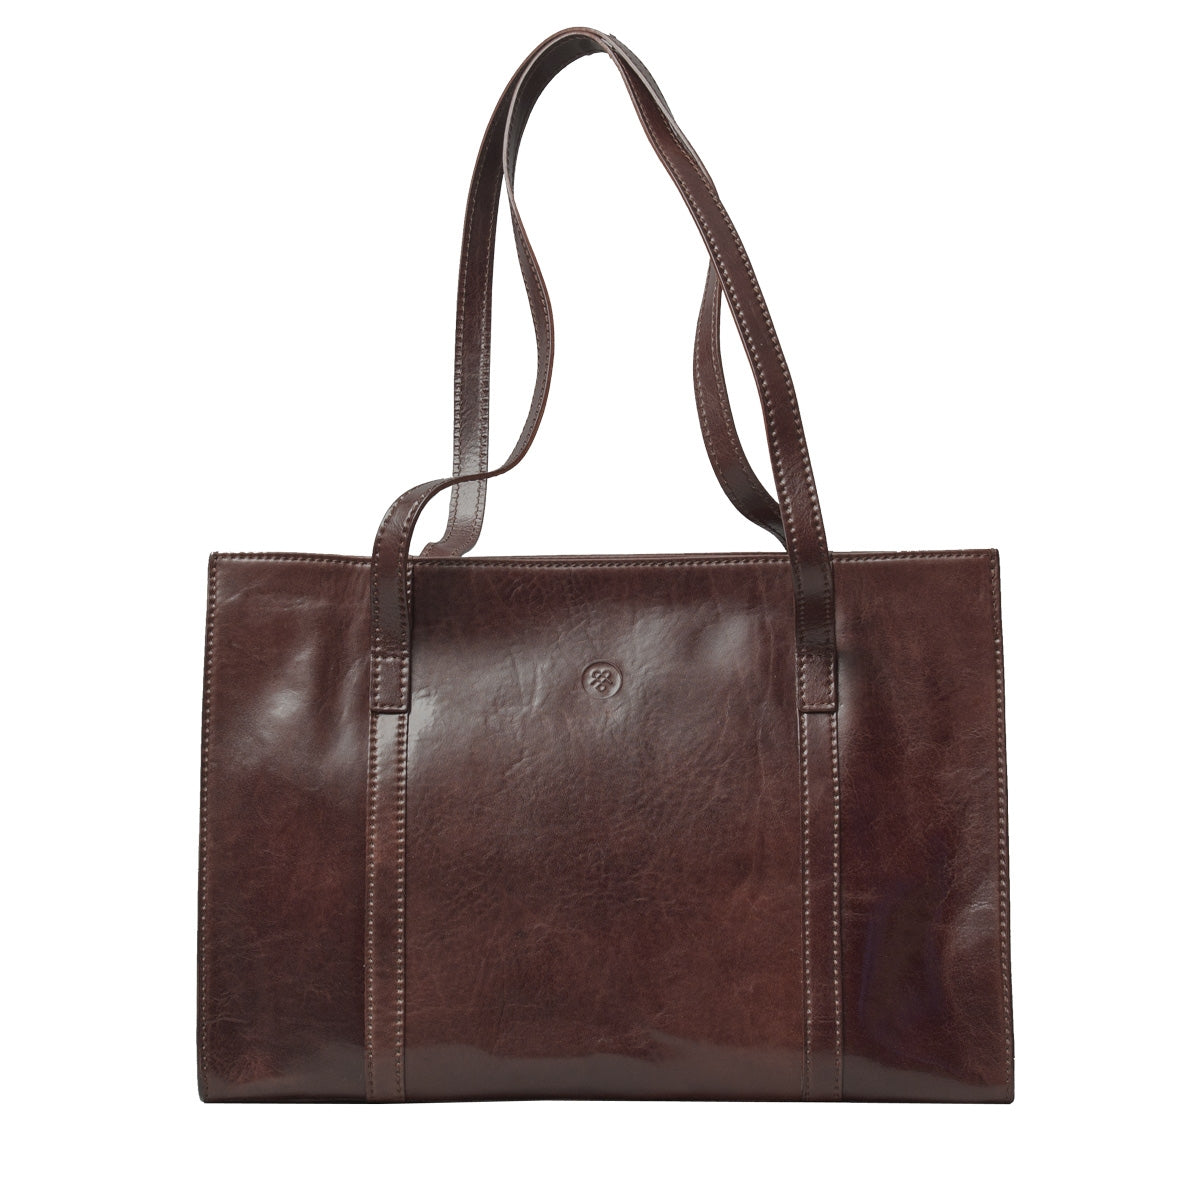 Image 1 of the 'Rivara' Brown Large Leather Shoulder Bag For Ladies